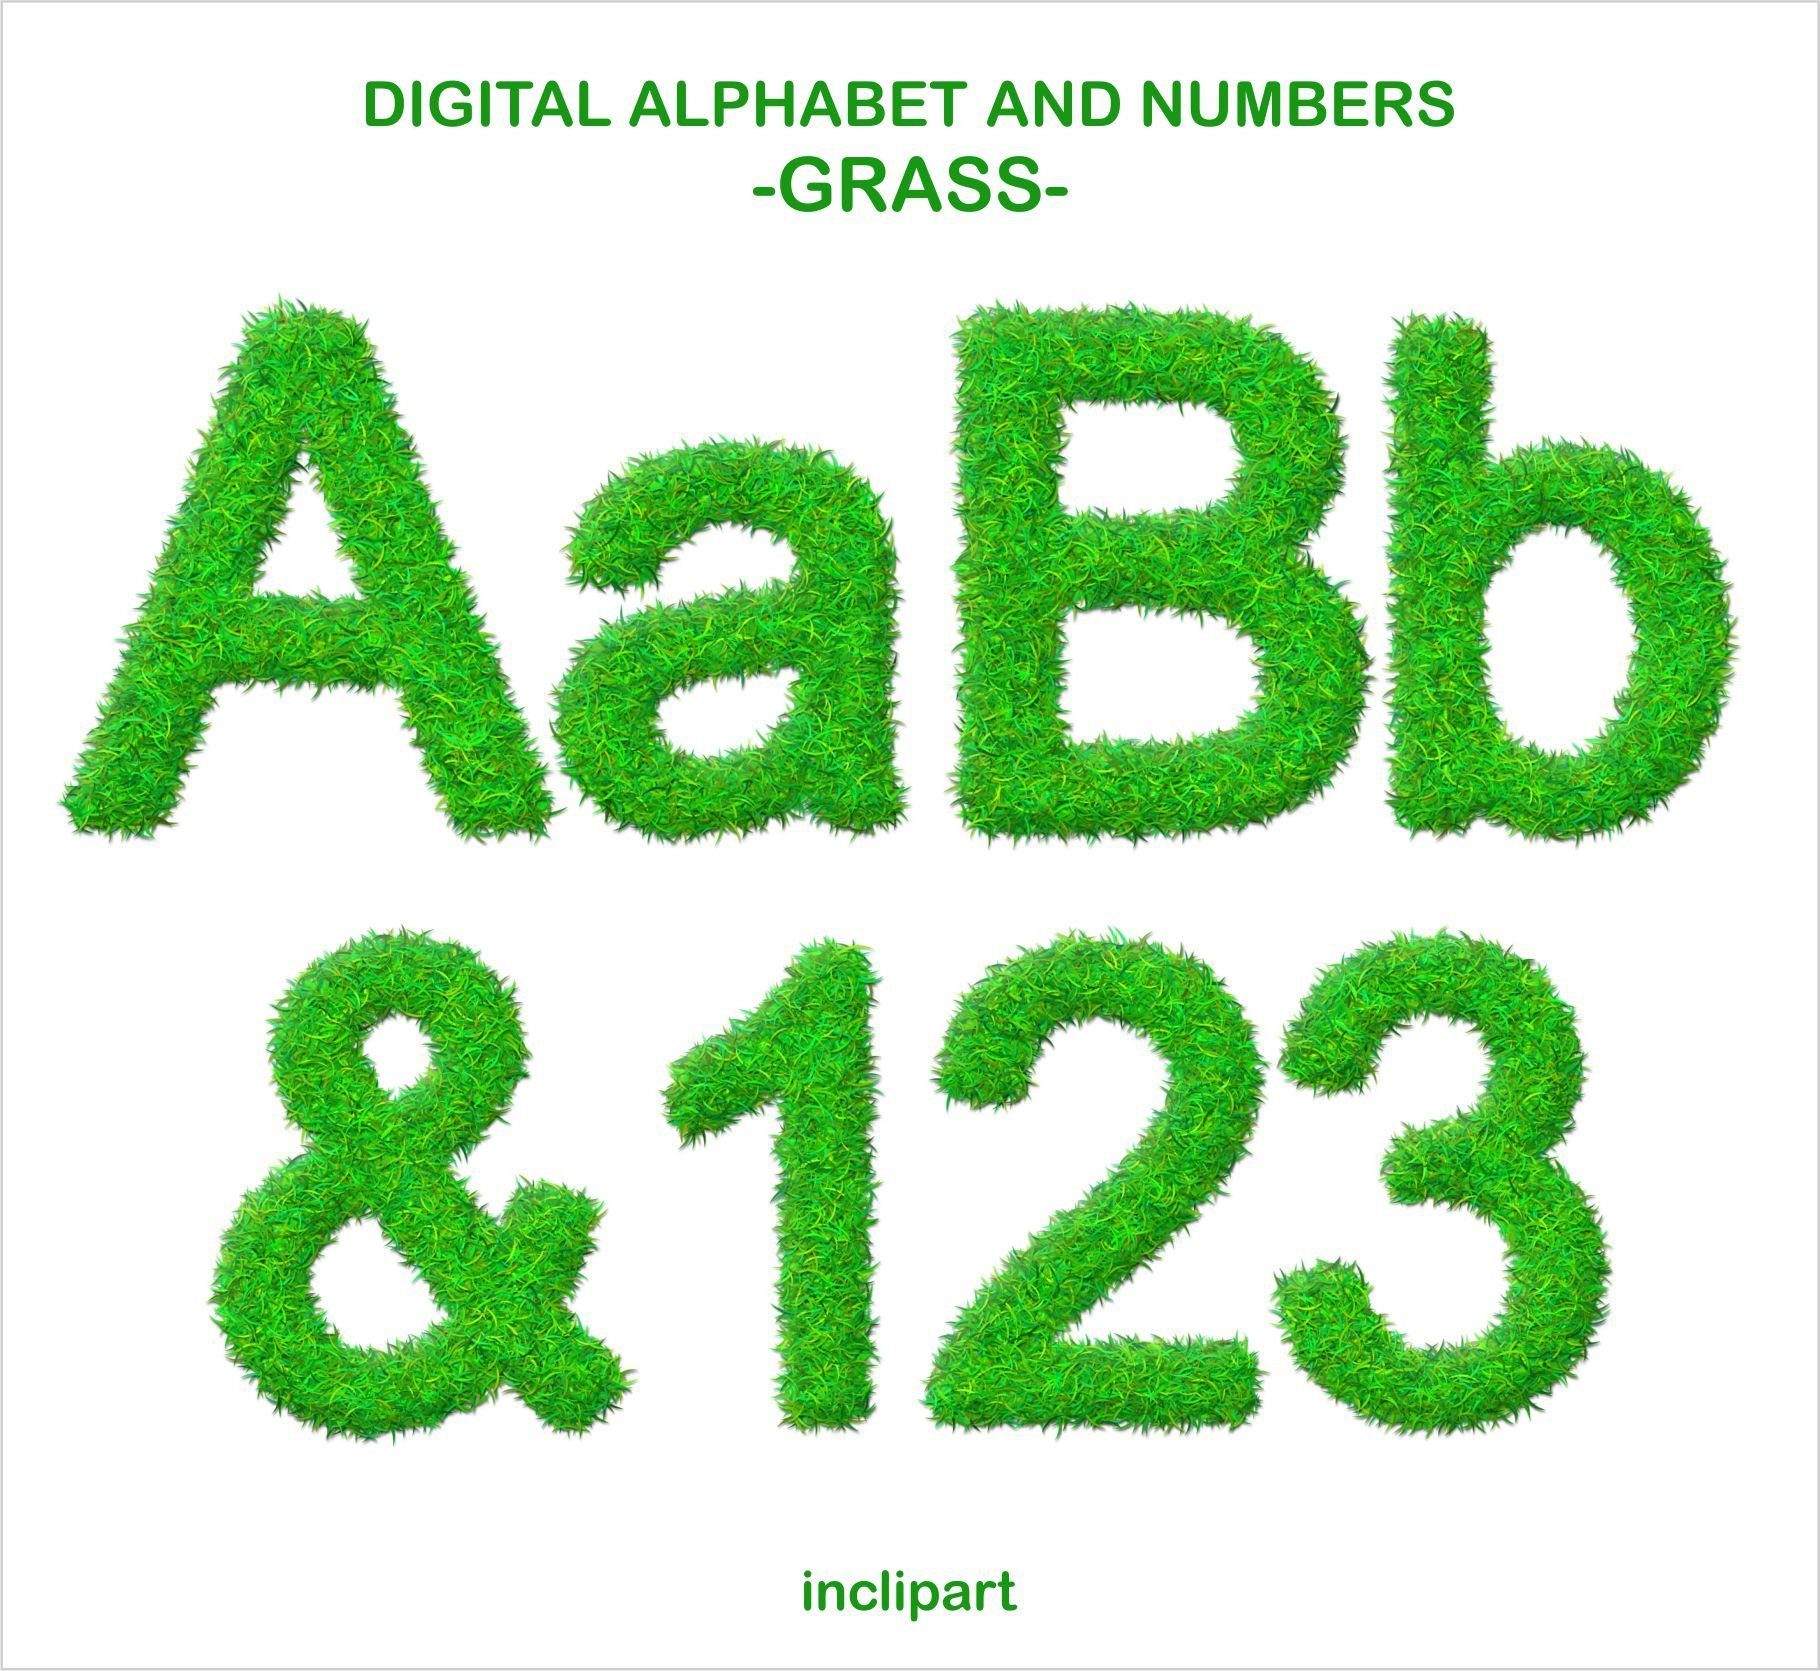 1820x1671 Grass Alphabet And Number Clipart. Green Grass Letters Numbers